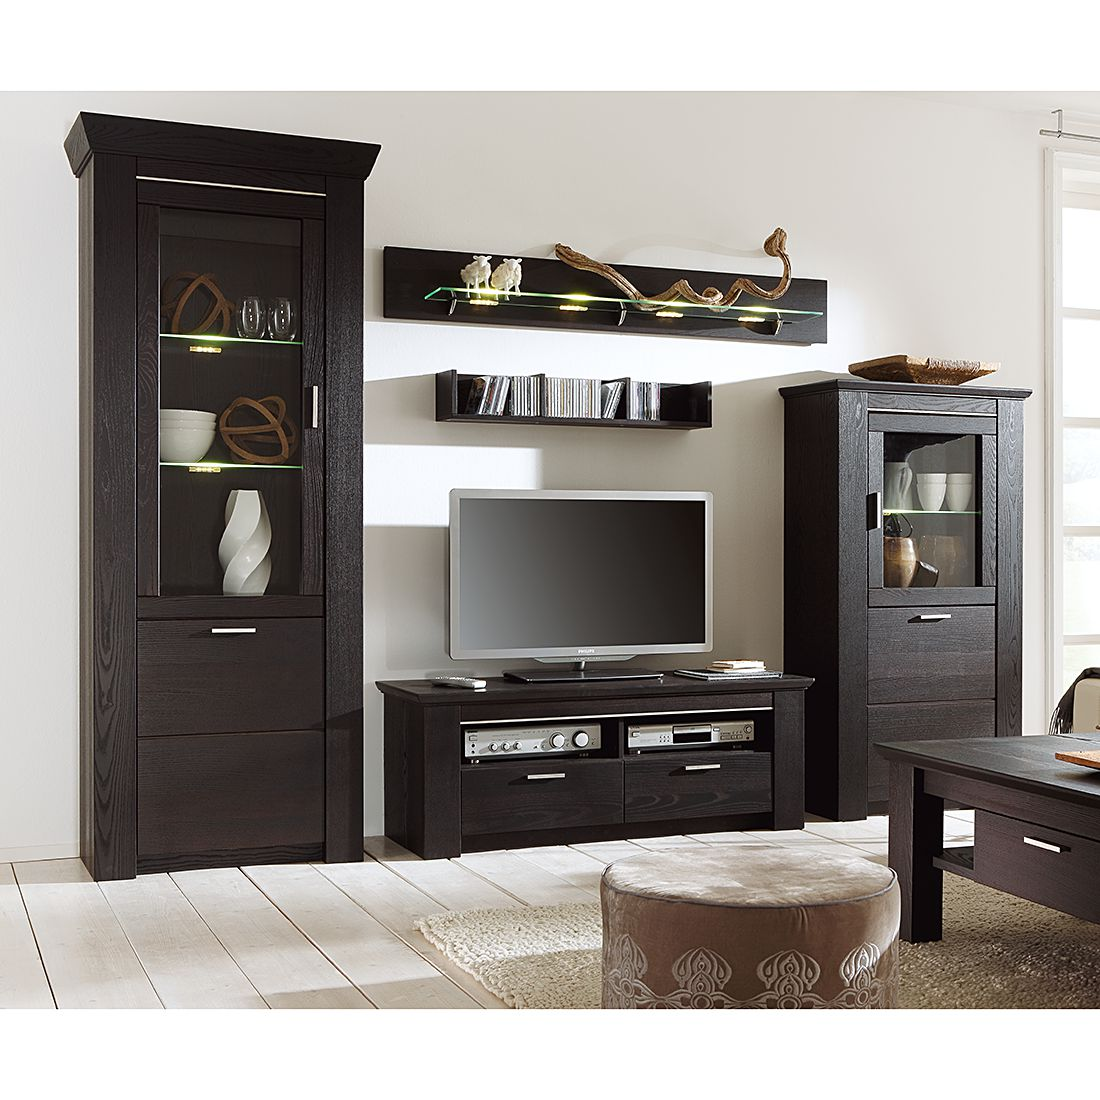 schwebet renschrank schwarz braun. Black Bedroom Furniture Sets. Home Design Ideas